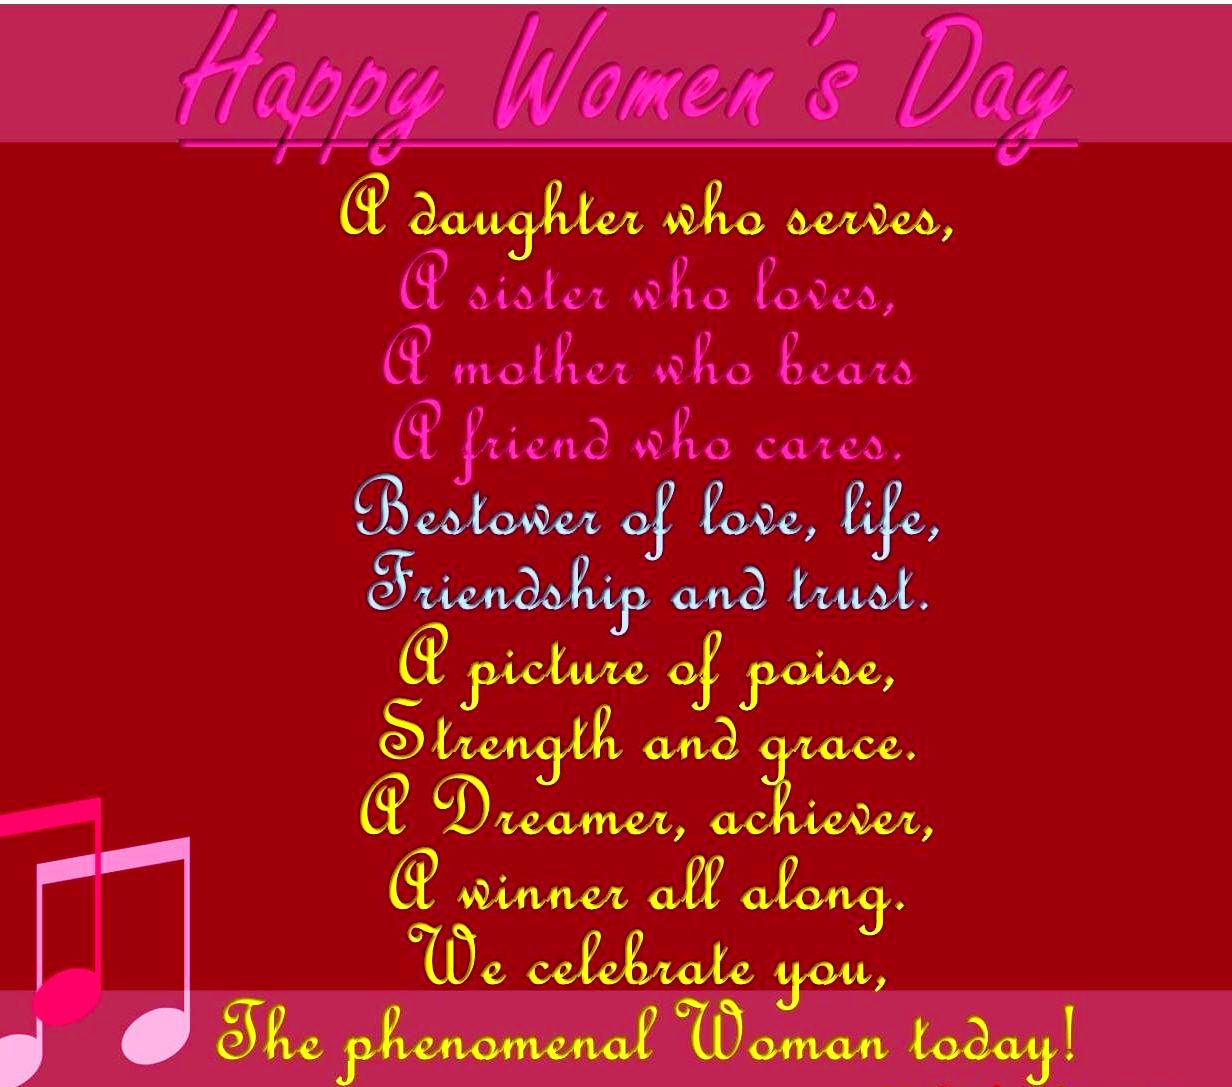 international-hd-happy-women-day-quote.j